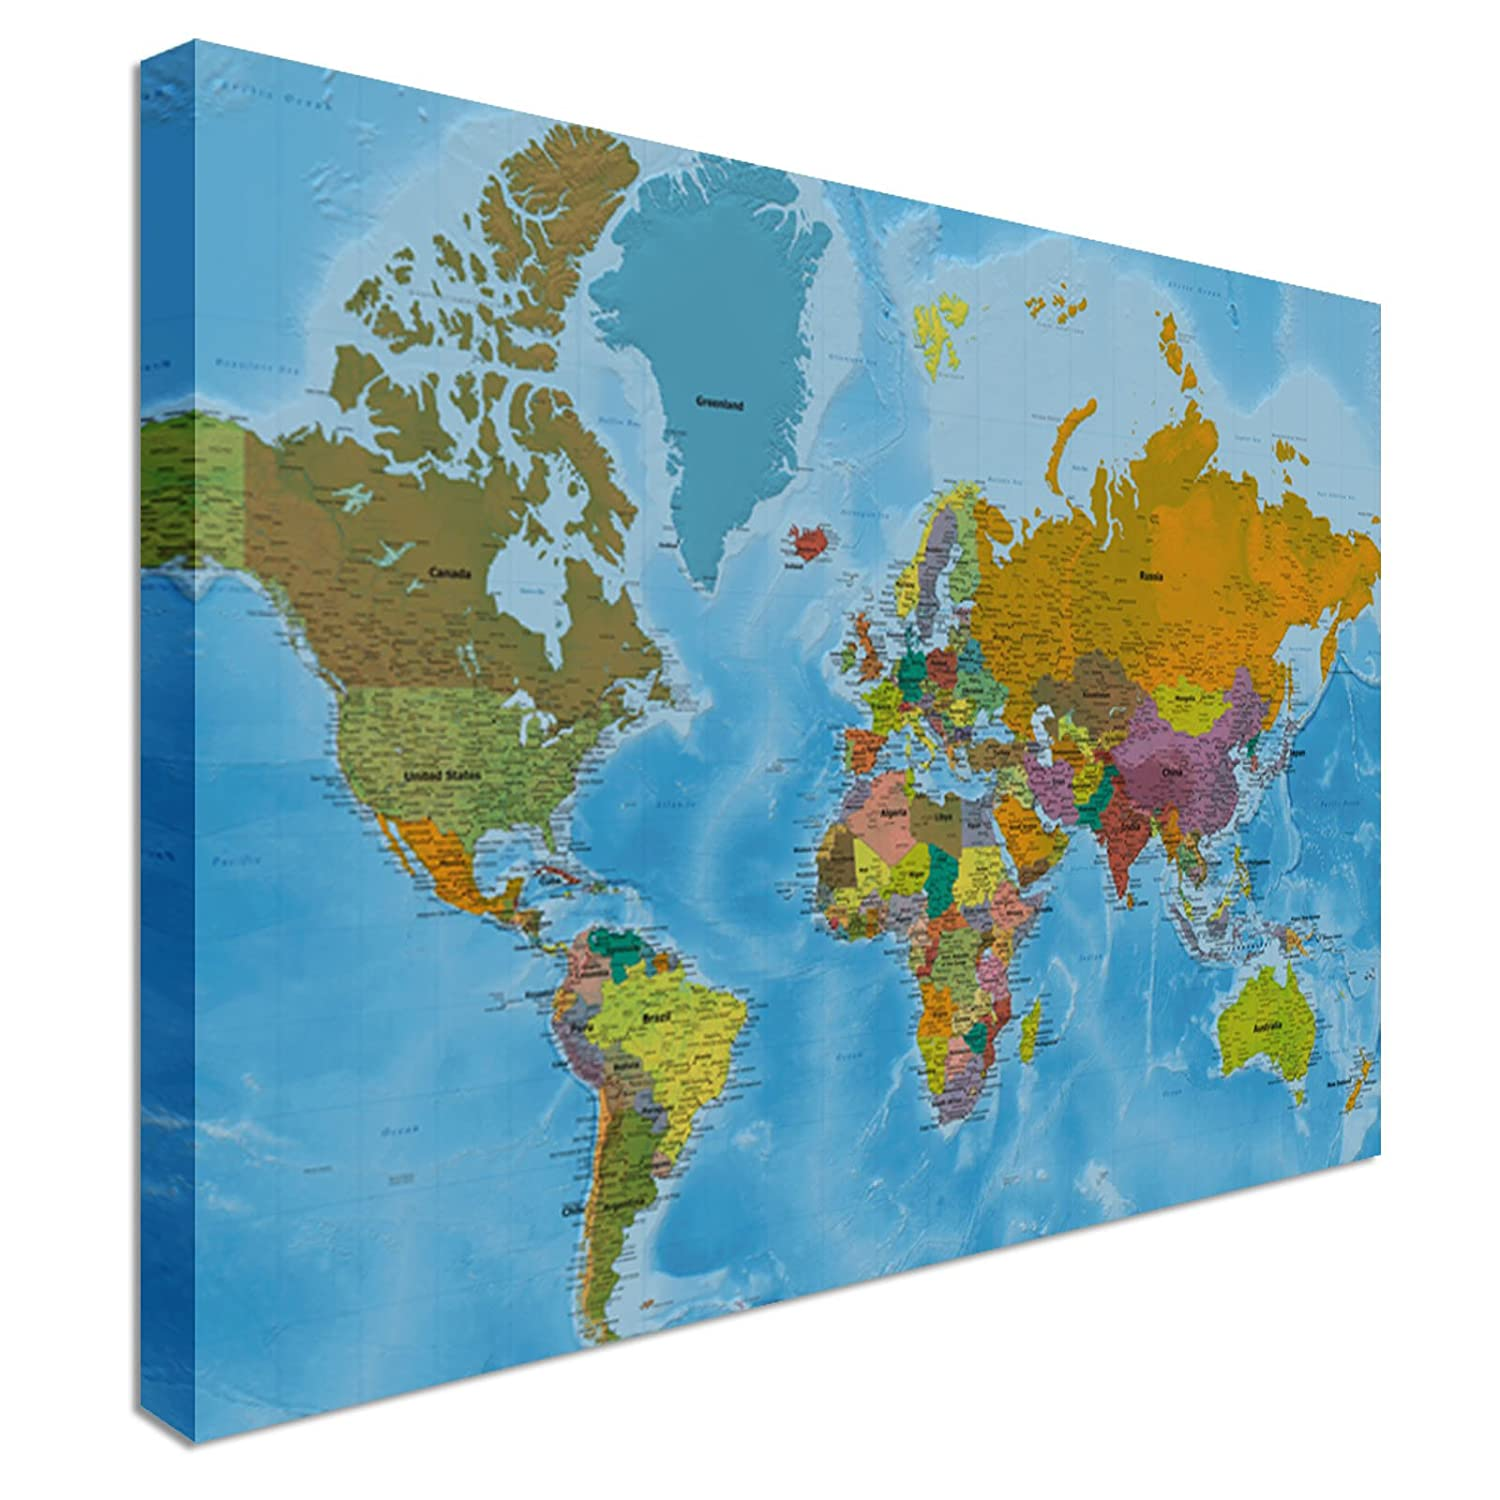 World map highest detail online hi res quality canvas wall world map highest detail online hi res quality canvas wall art pictures 48 x 30 inches amazon kitchen home gumiabroncs Image collections